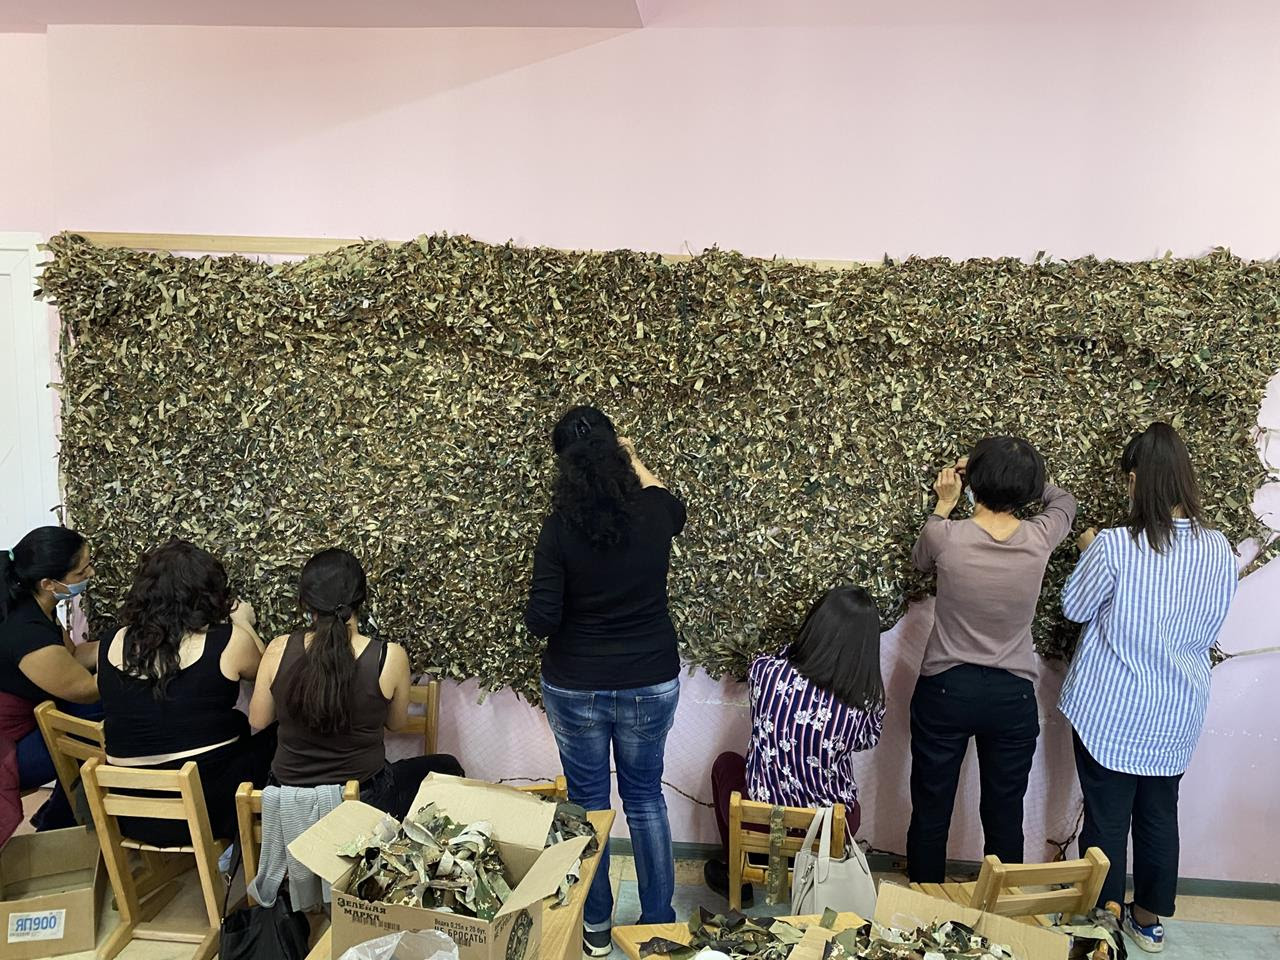 Women volunteers construct camouflage nets to be used on the Nagorno-Karabakh frontlines.